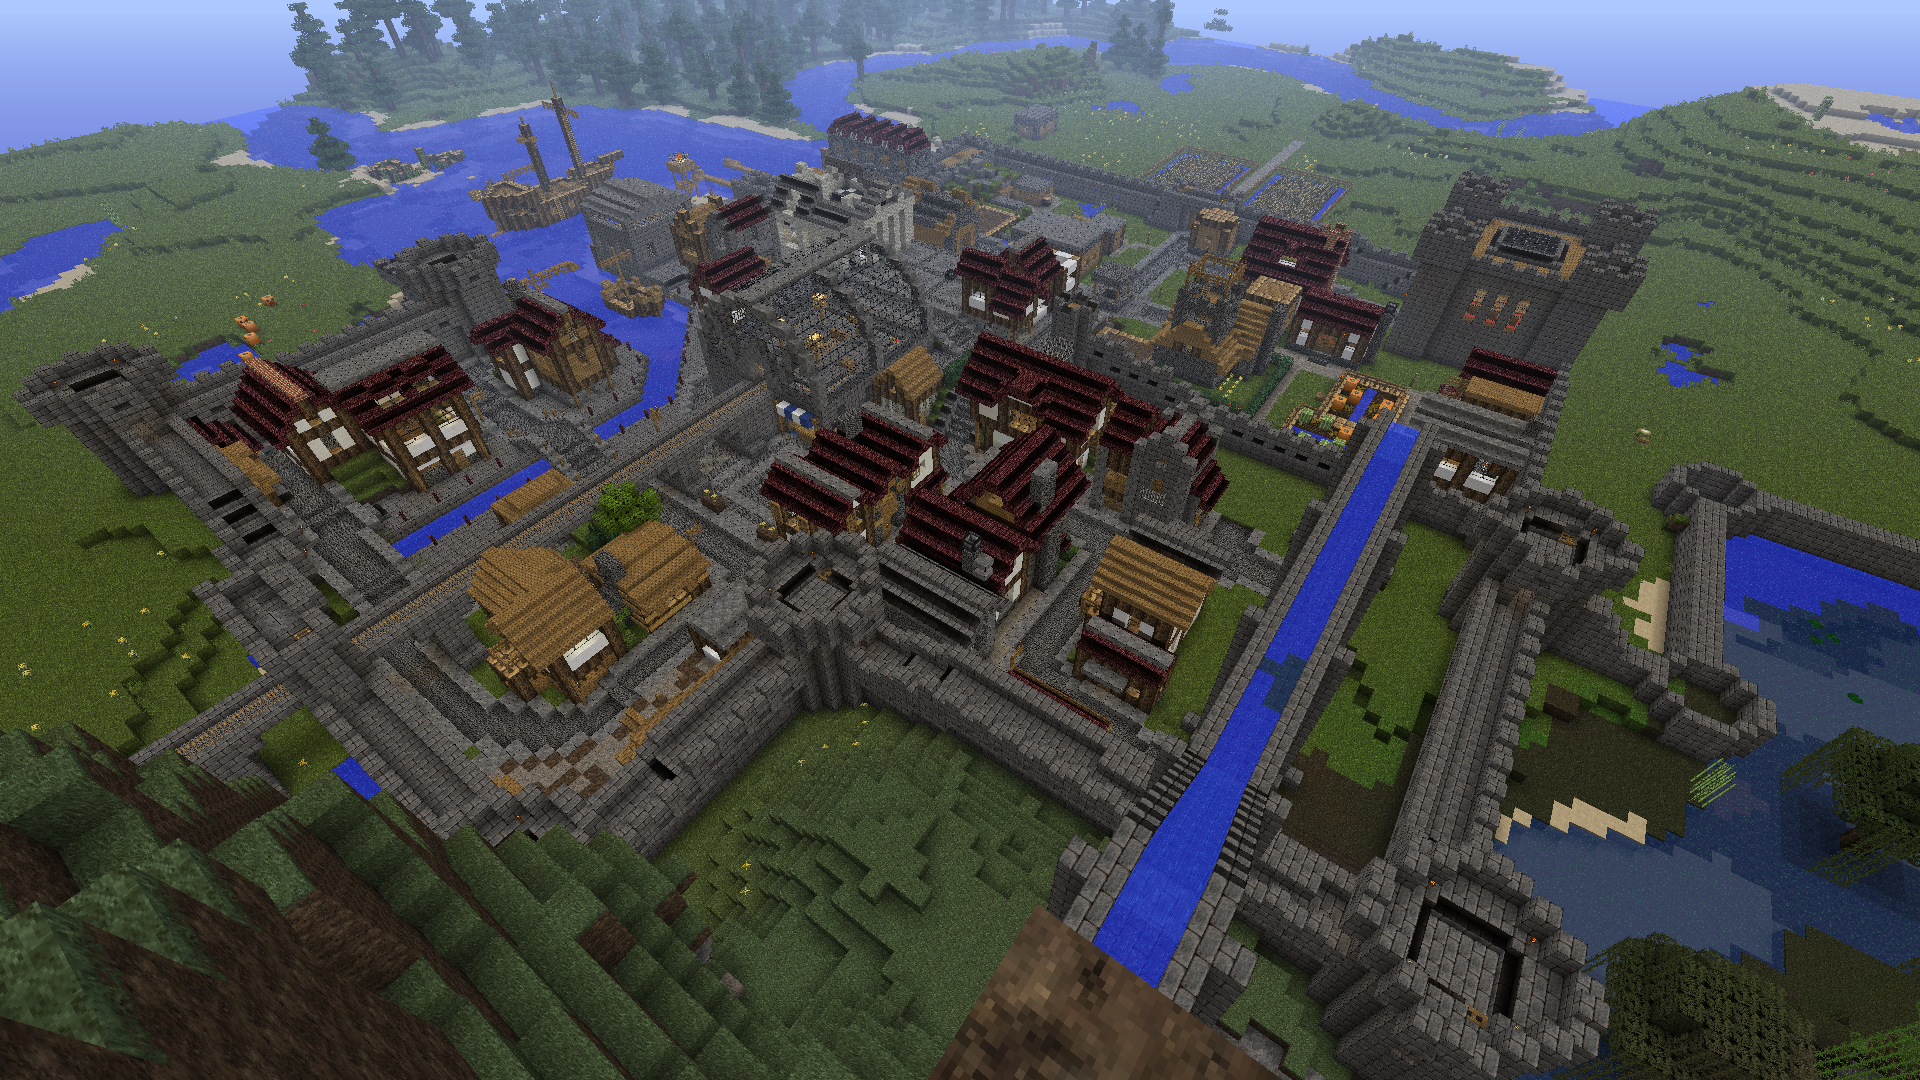 Yet Another Medieval Town  Wip  - With Aquaduct  Castle  Harbor  And Railroad